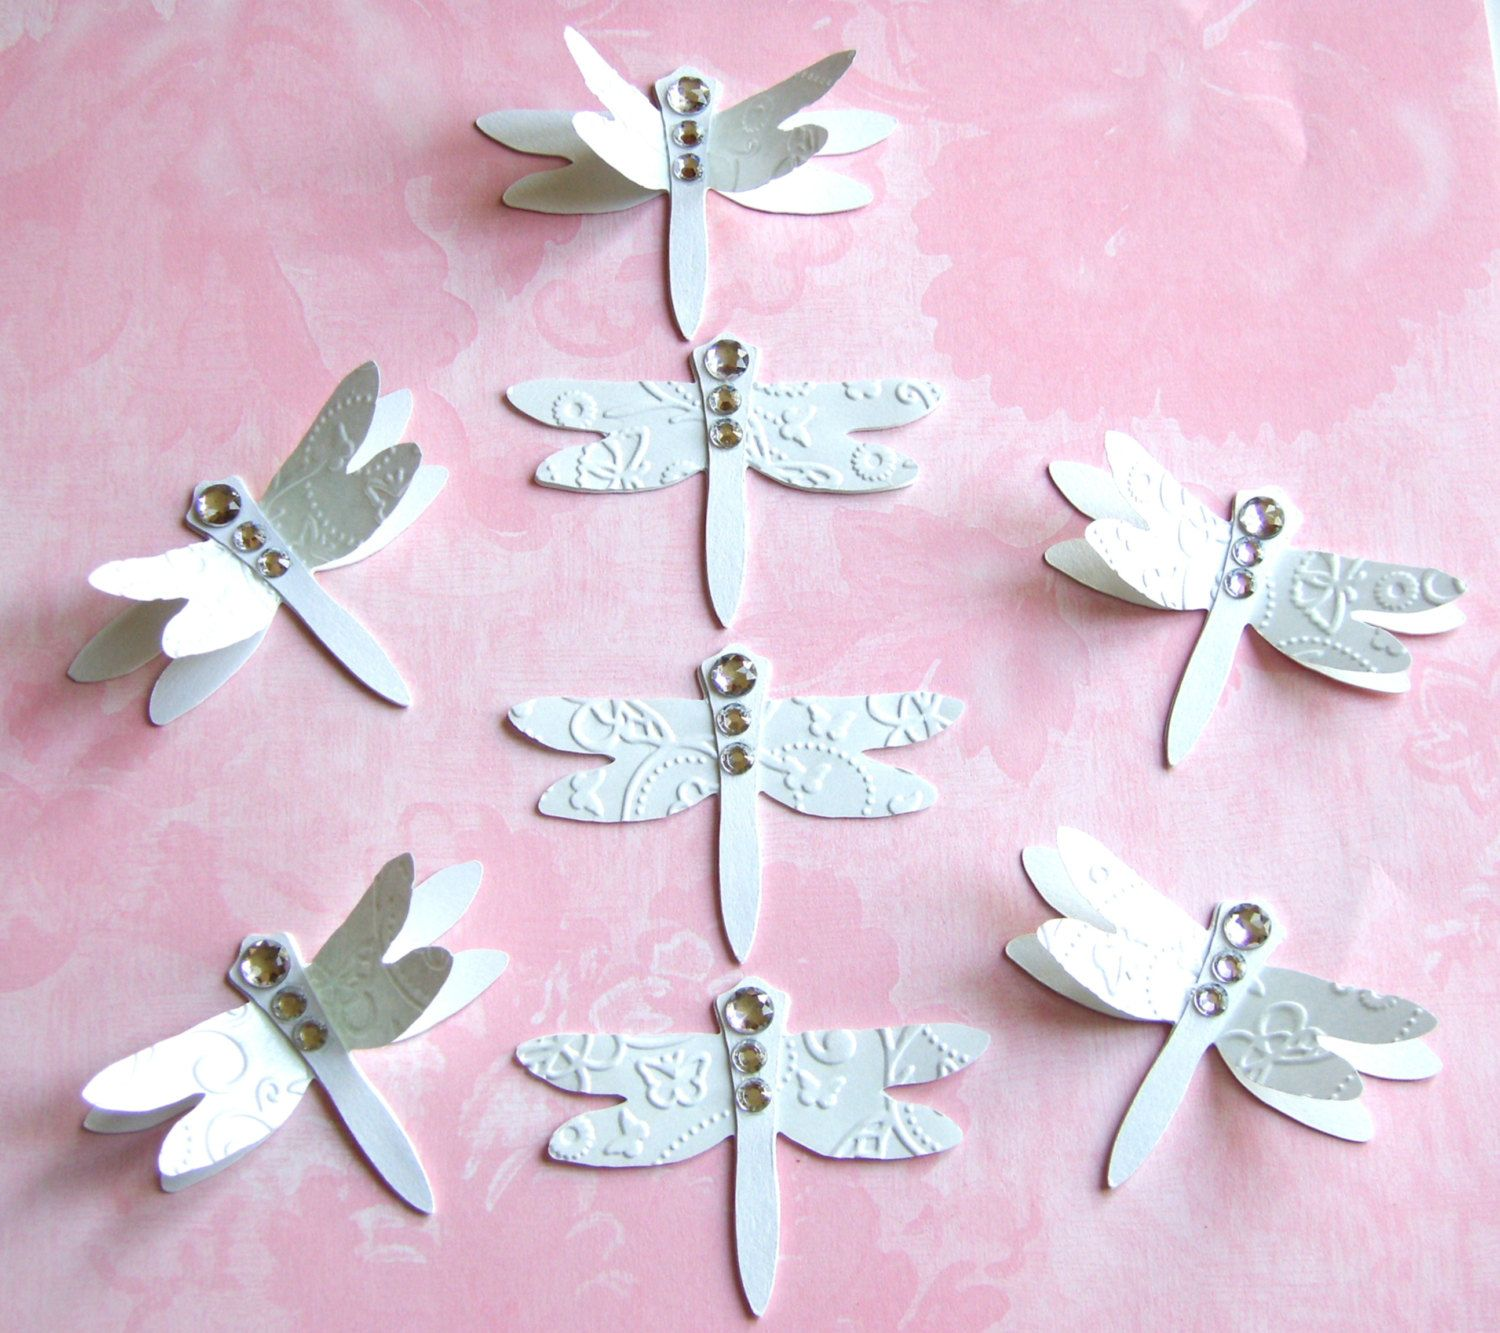 8 Die Cut Dragonfly Card Toppers Ready Made embellishments for Cards ...